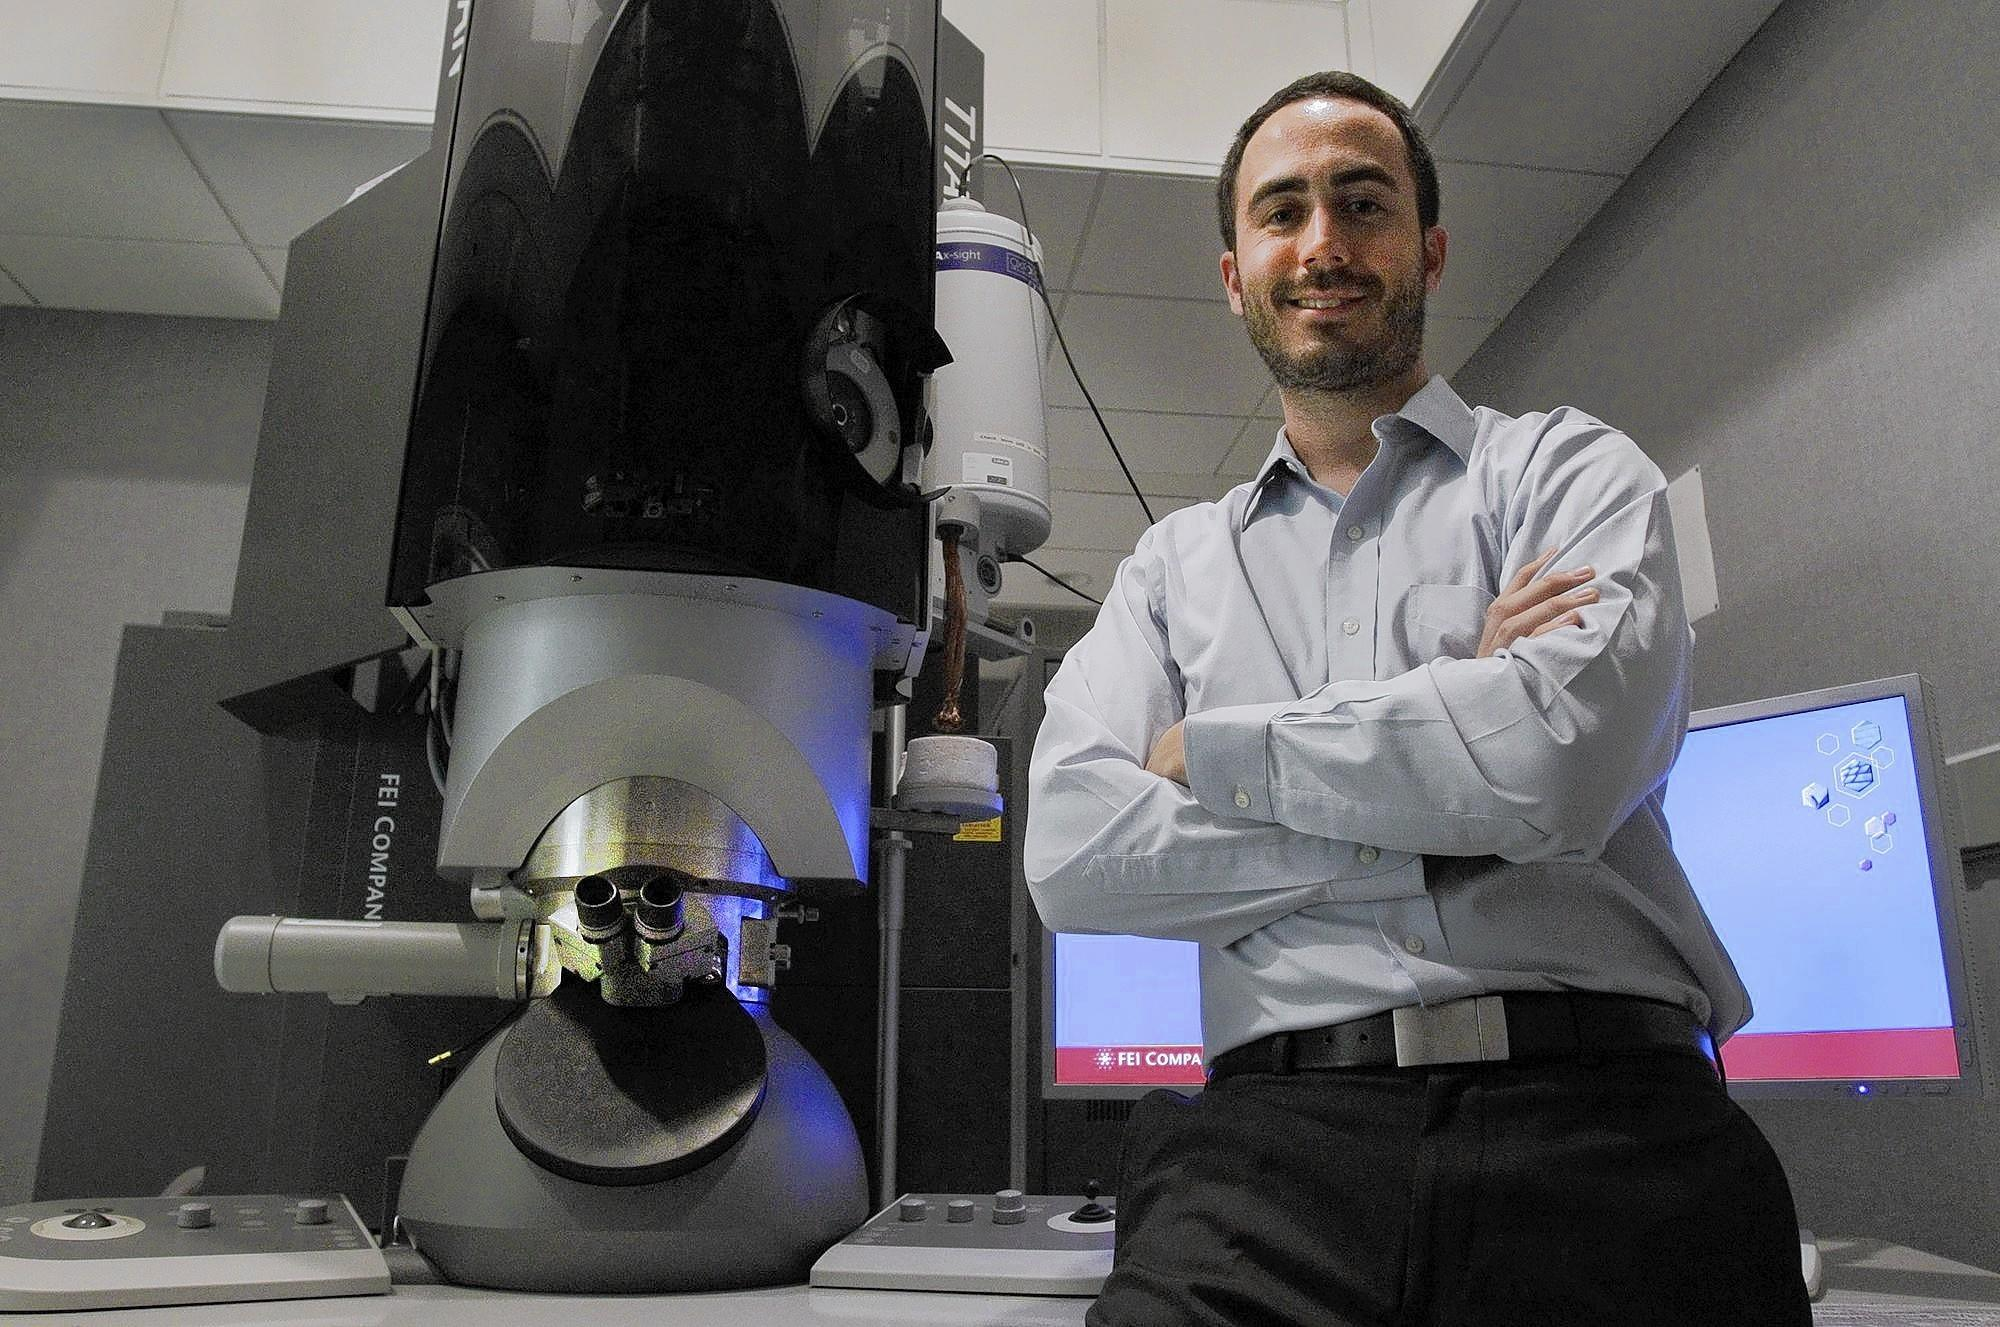 Edward Miracco, a biochemist at UCLA, raised $6,215 through crowdfunding to buy extra time on an electron microscope for his study of an enzyme that helps cancer cells grow.